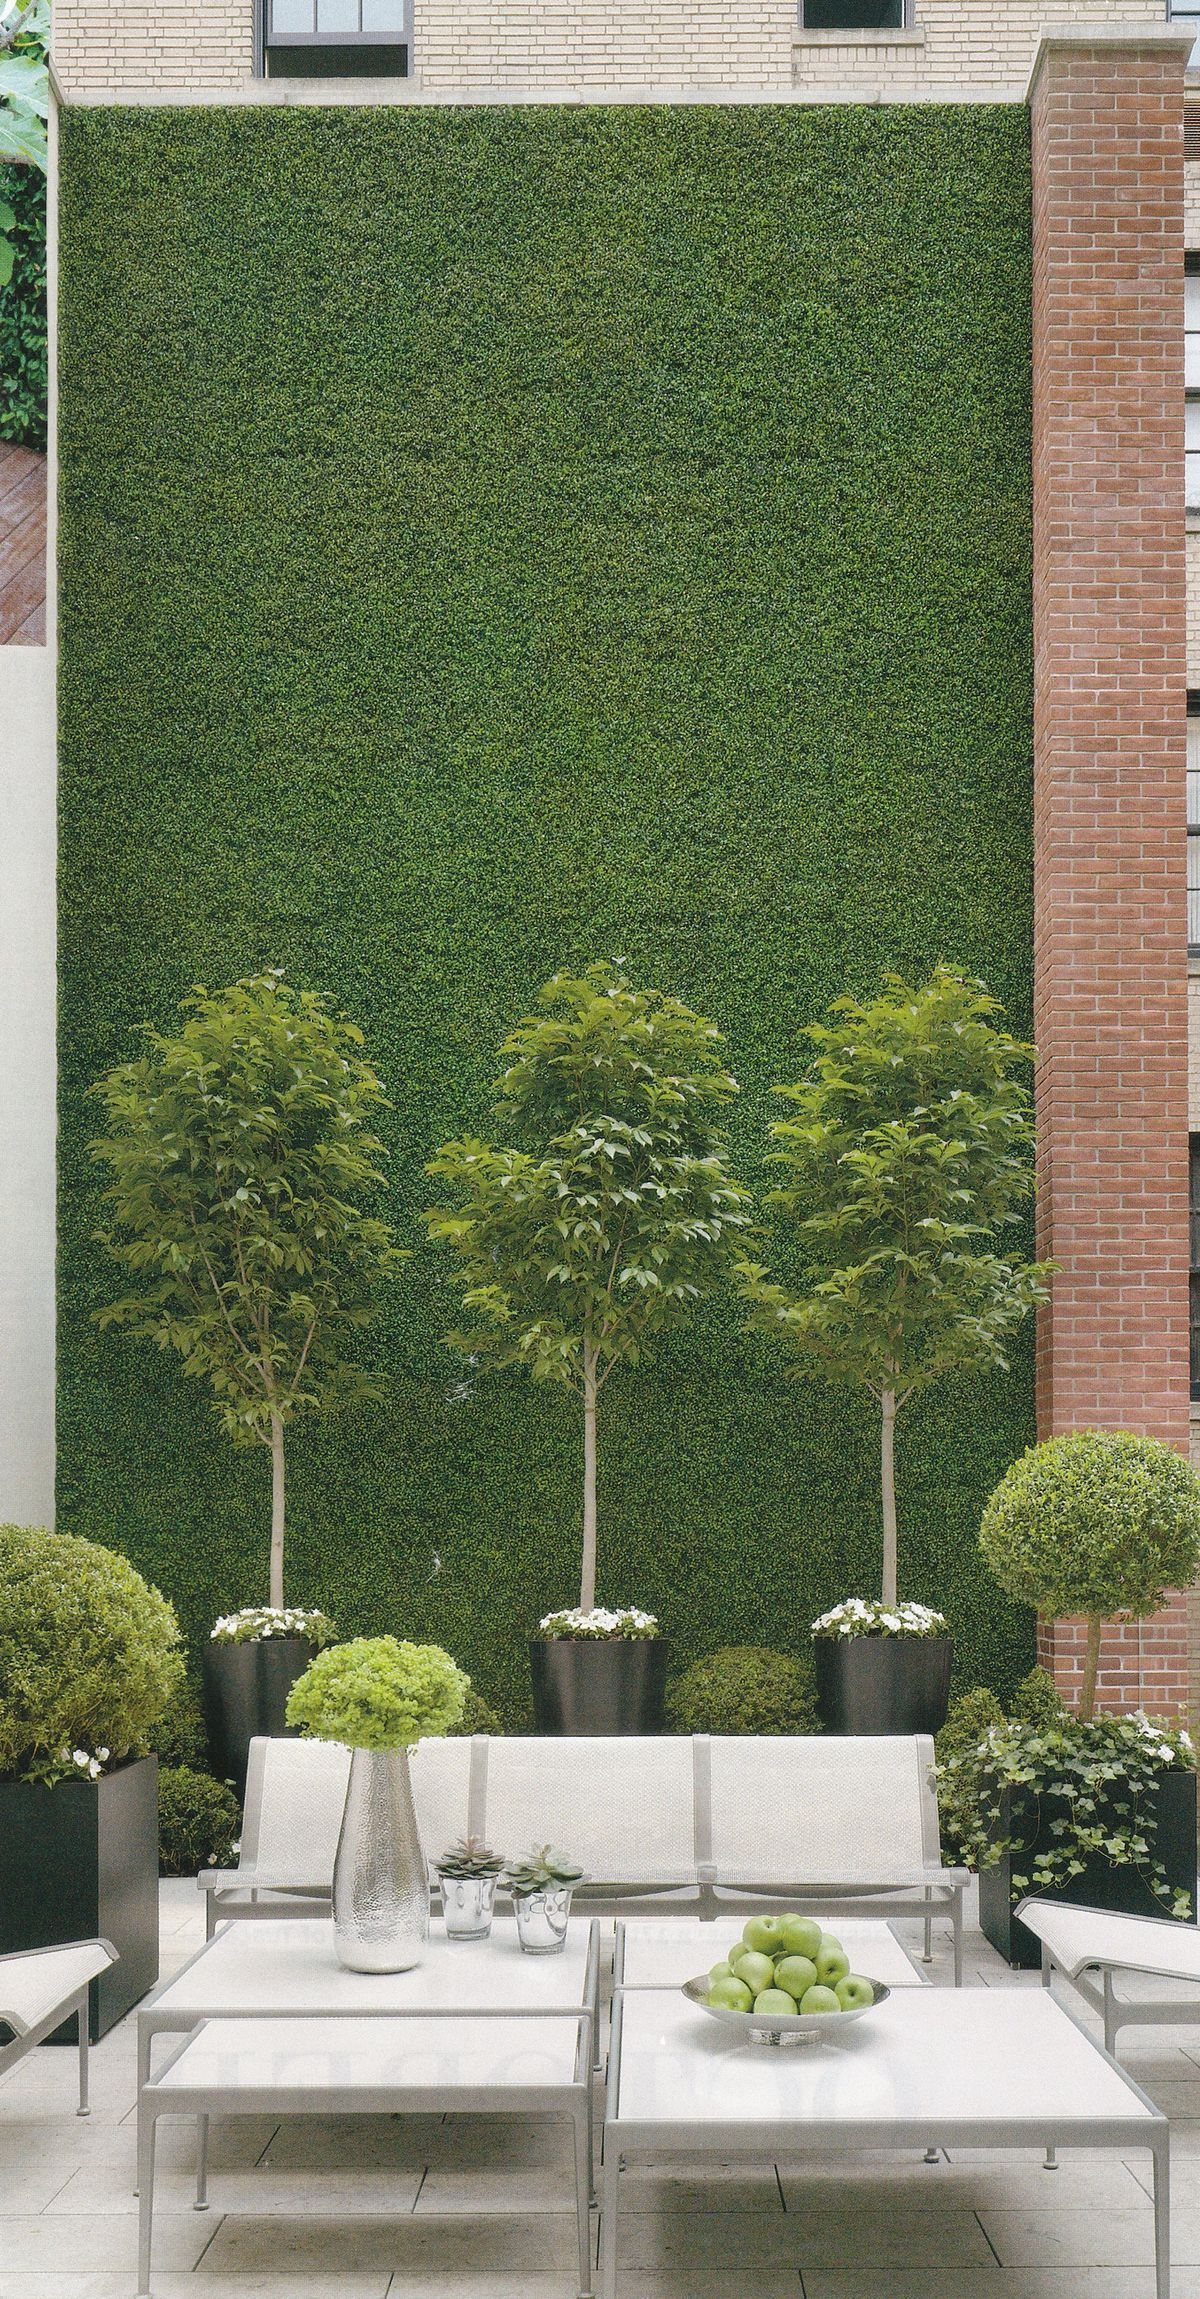 Backyard Landscaping Ideas Cover An Unfinished Wall With Faux Turf Accent Panels Home Depot Backyard Landscaping Backyard Vertical Garden